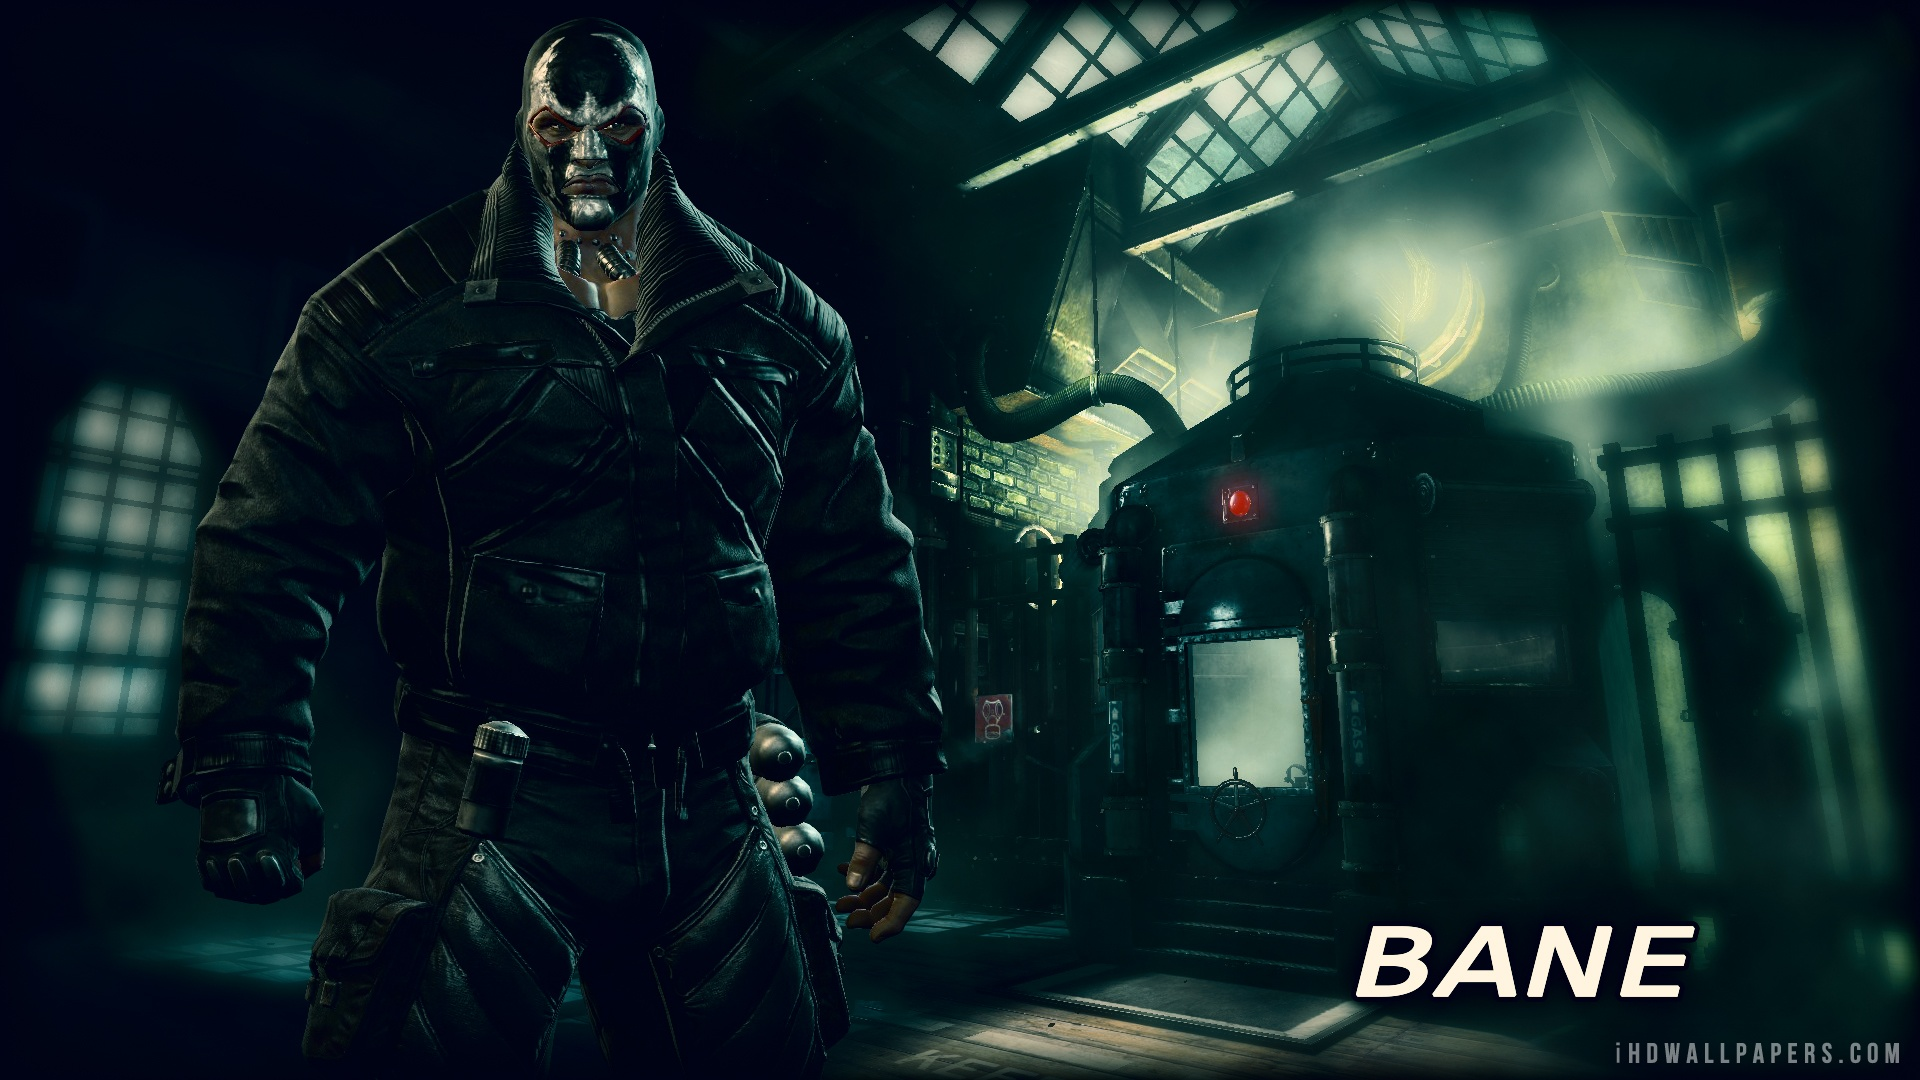 28 Batman Origins Bane Wallpaper On Wallpapersafari